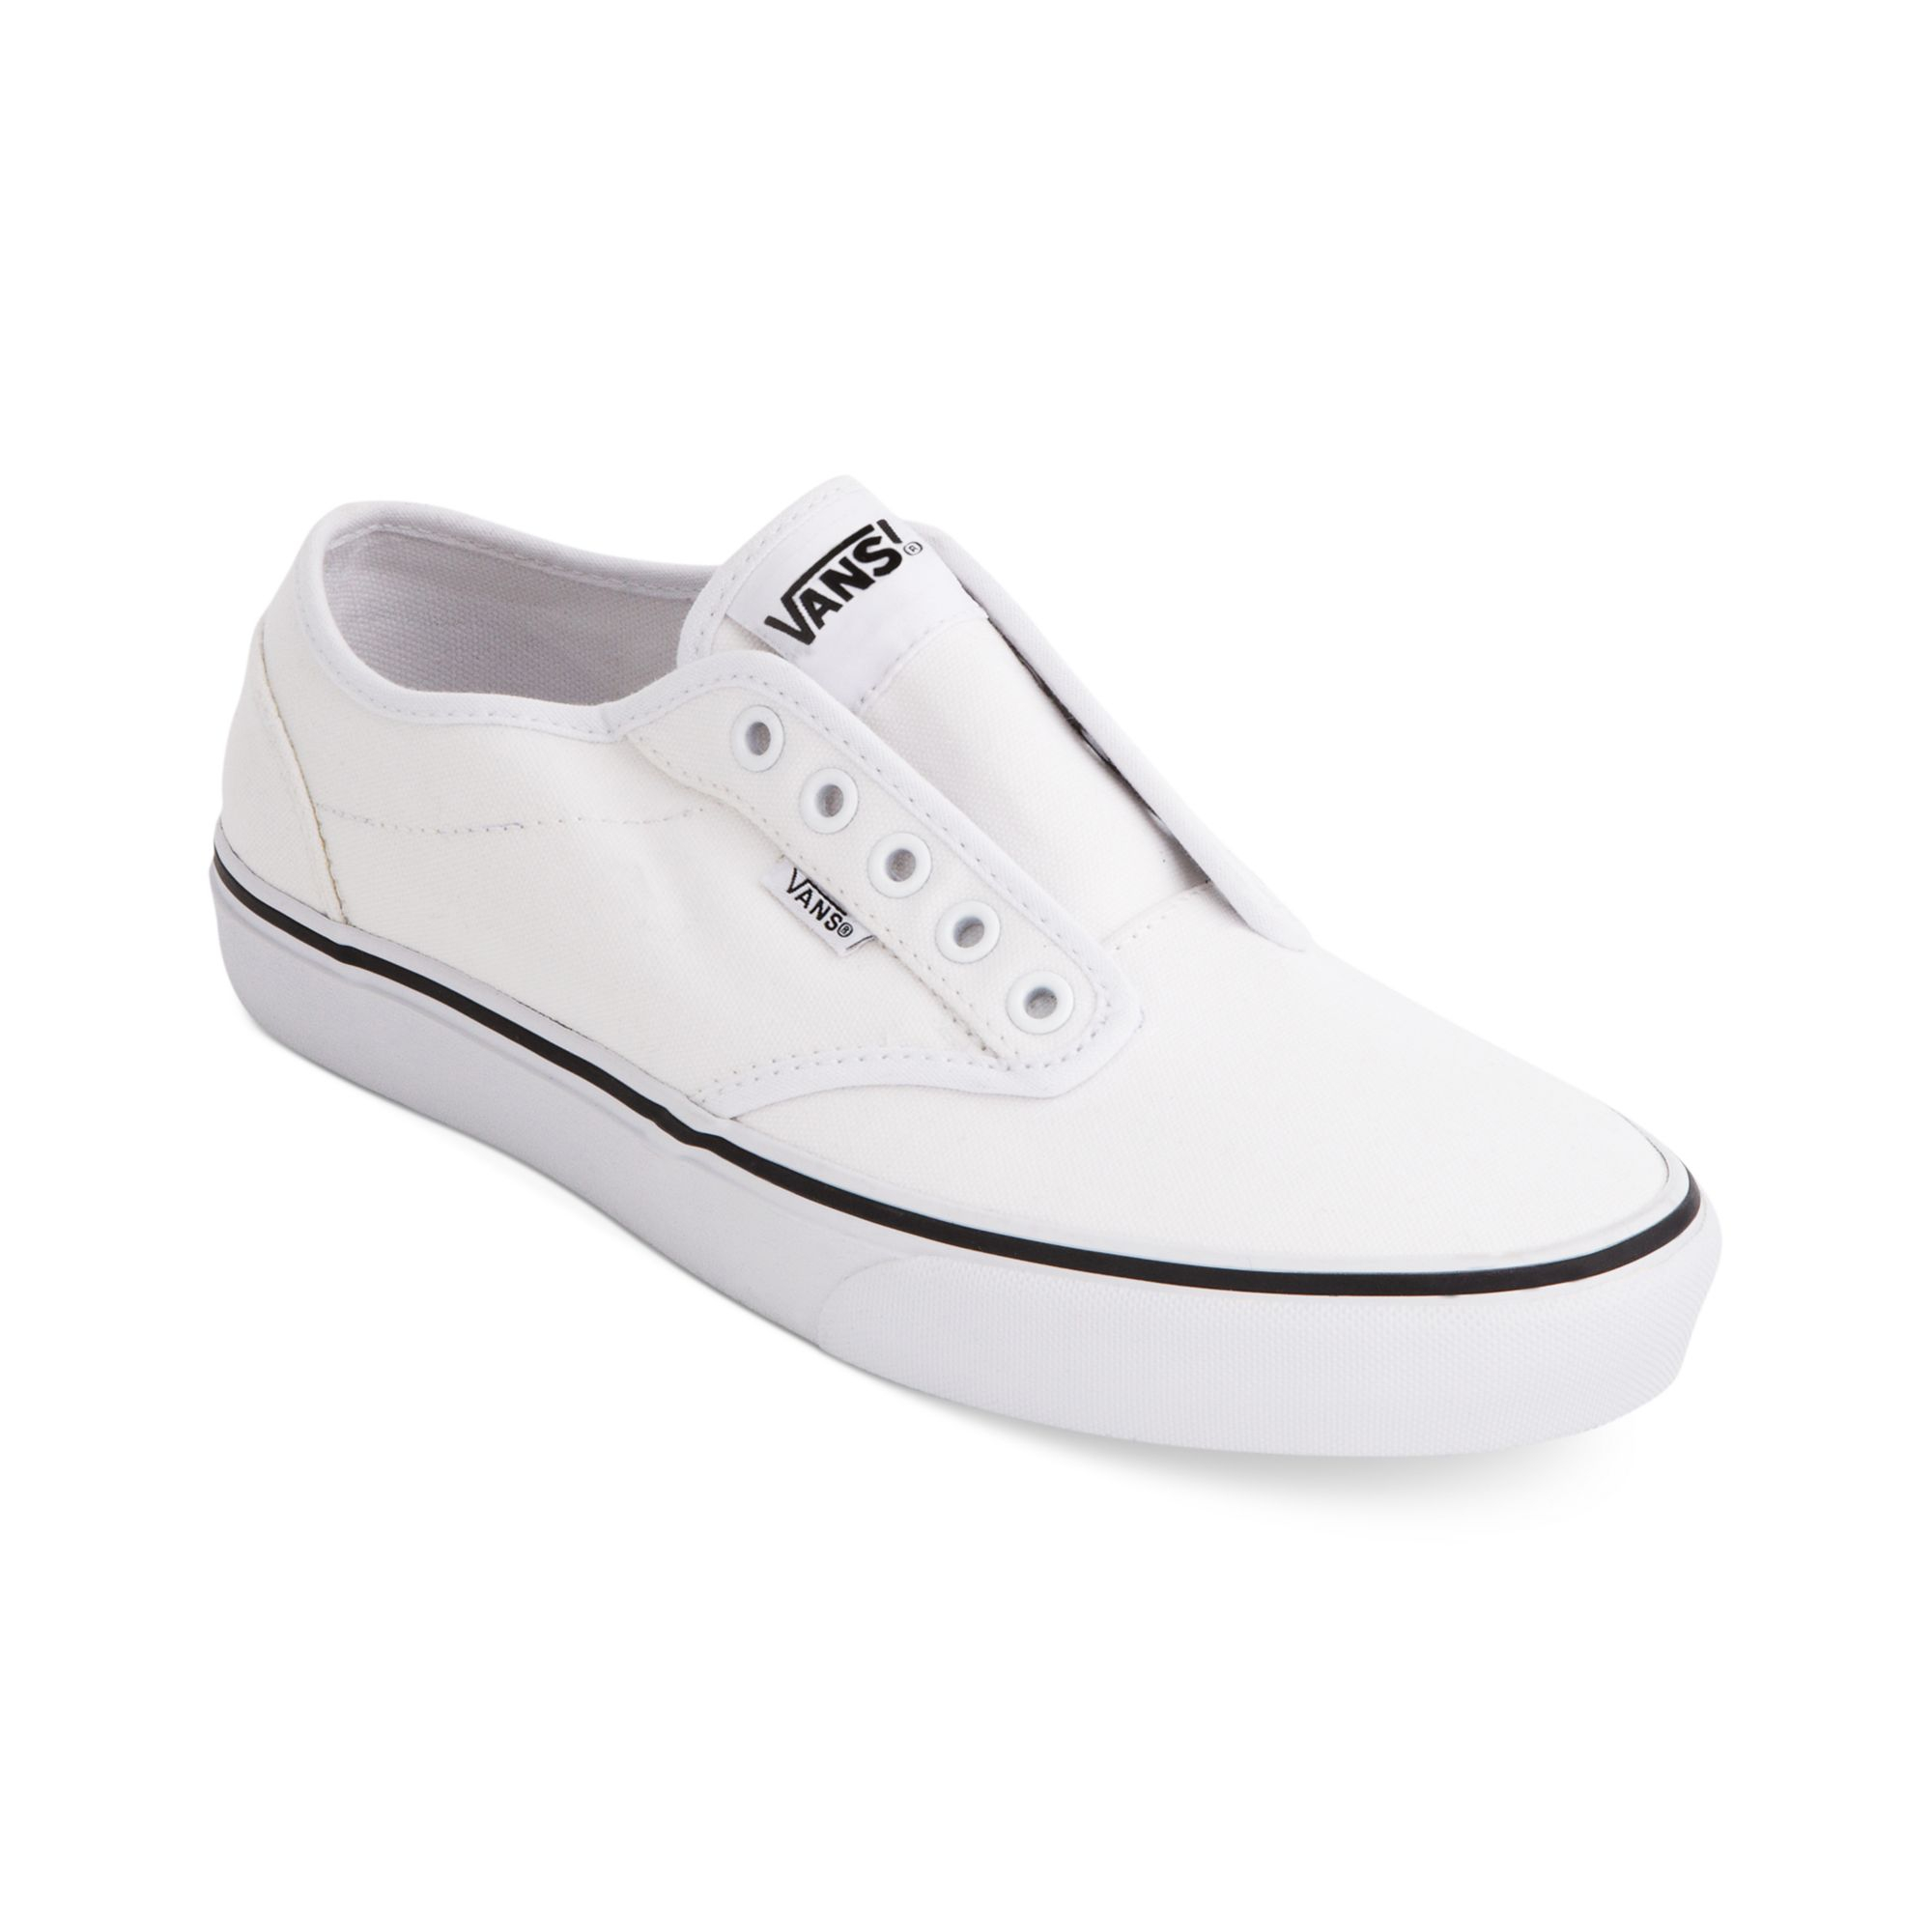 Vans Atwood Laceless Sneakers in White